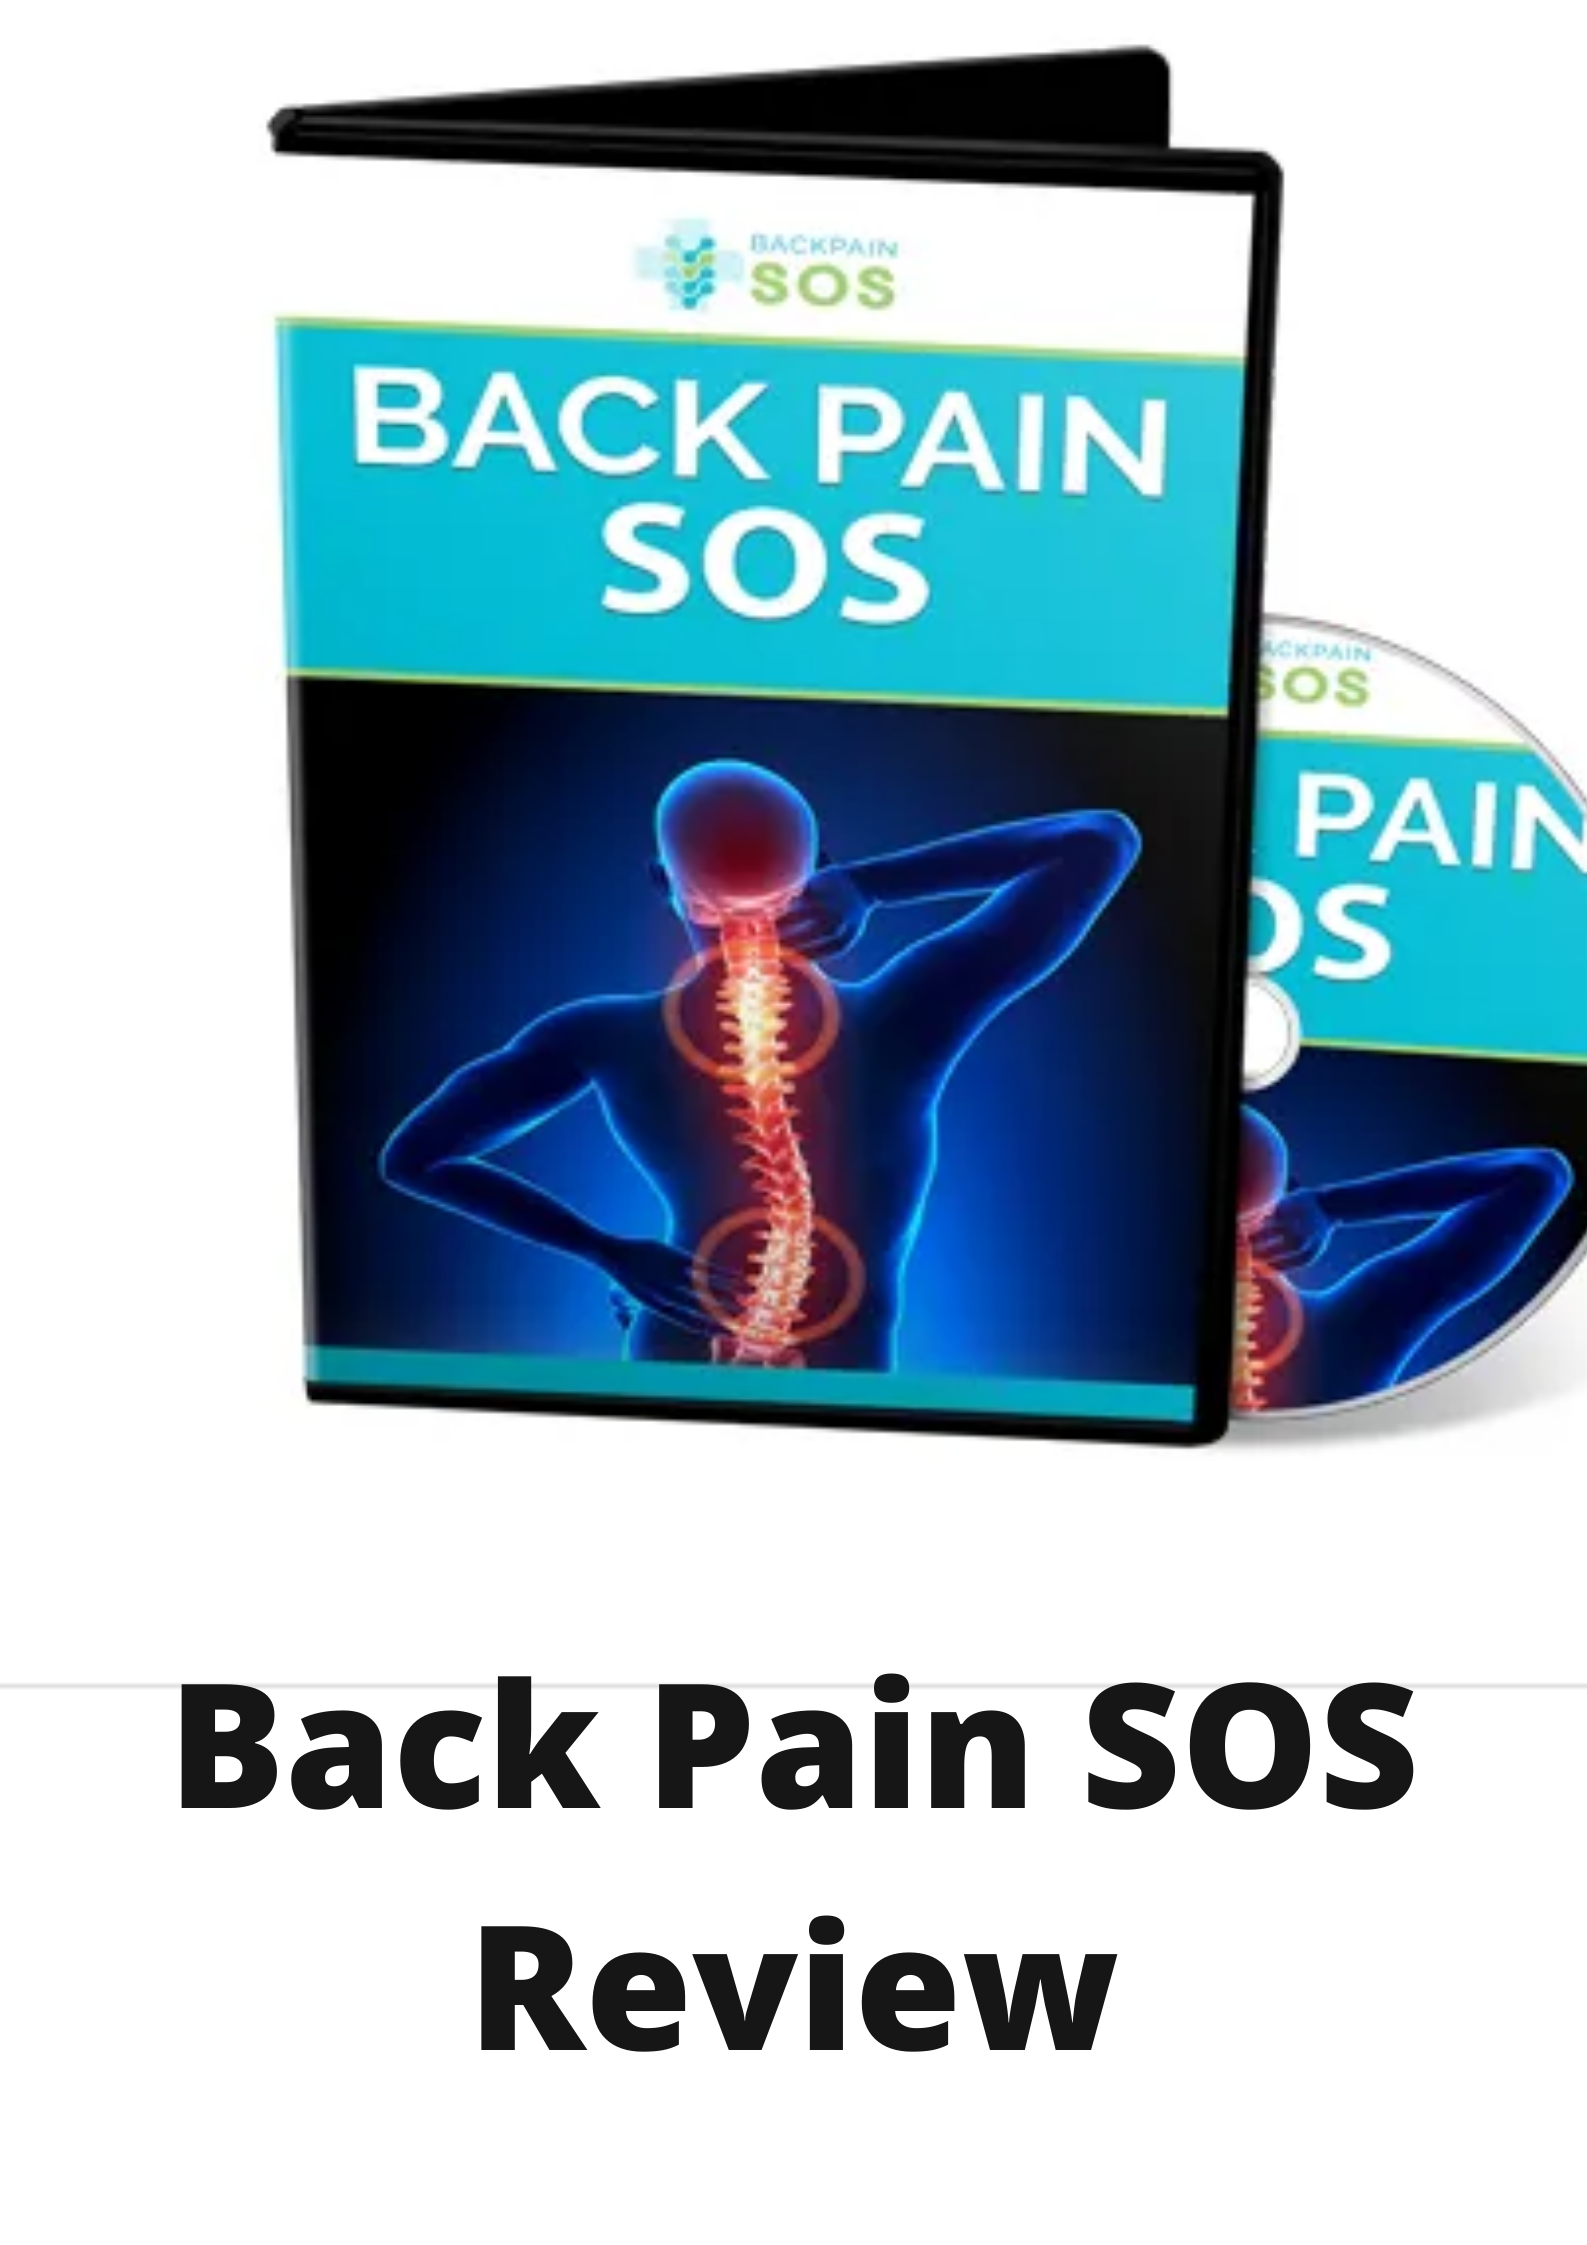 Back Pain SOS Review-Is this worth it?